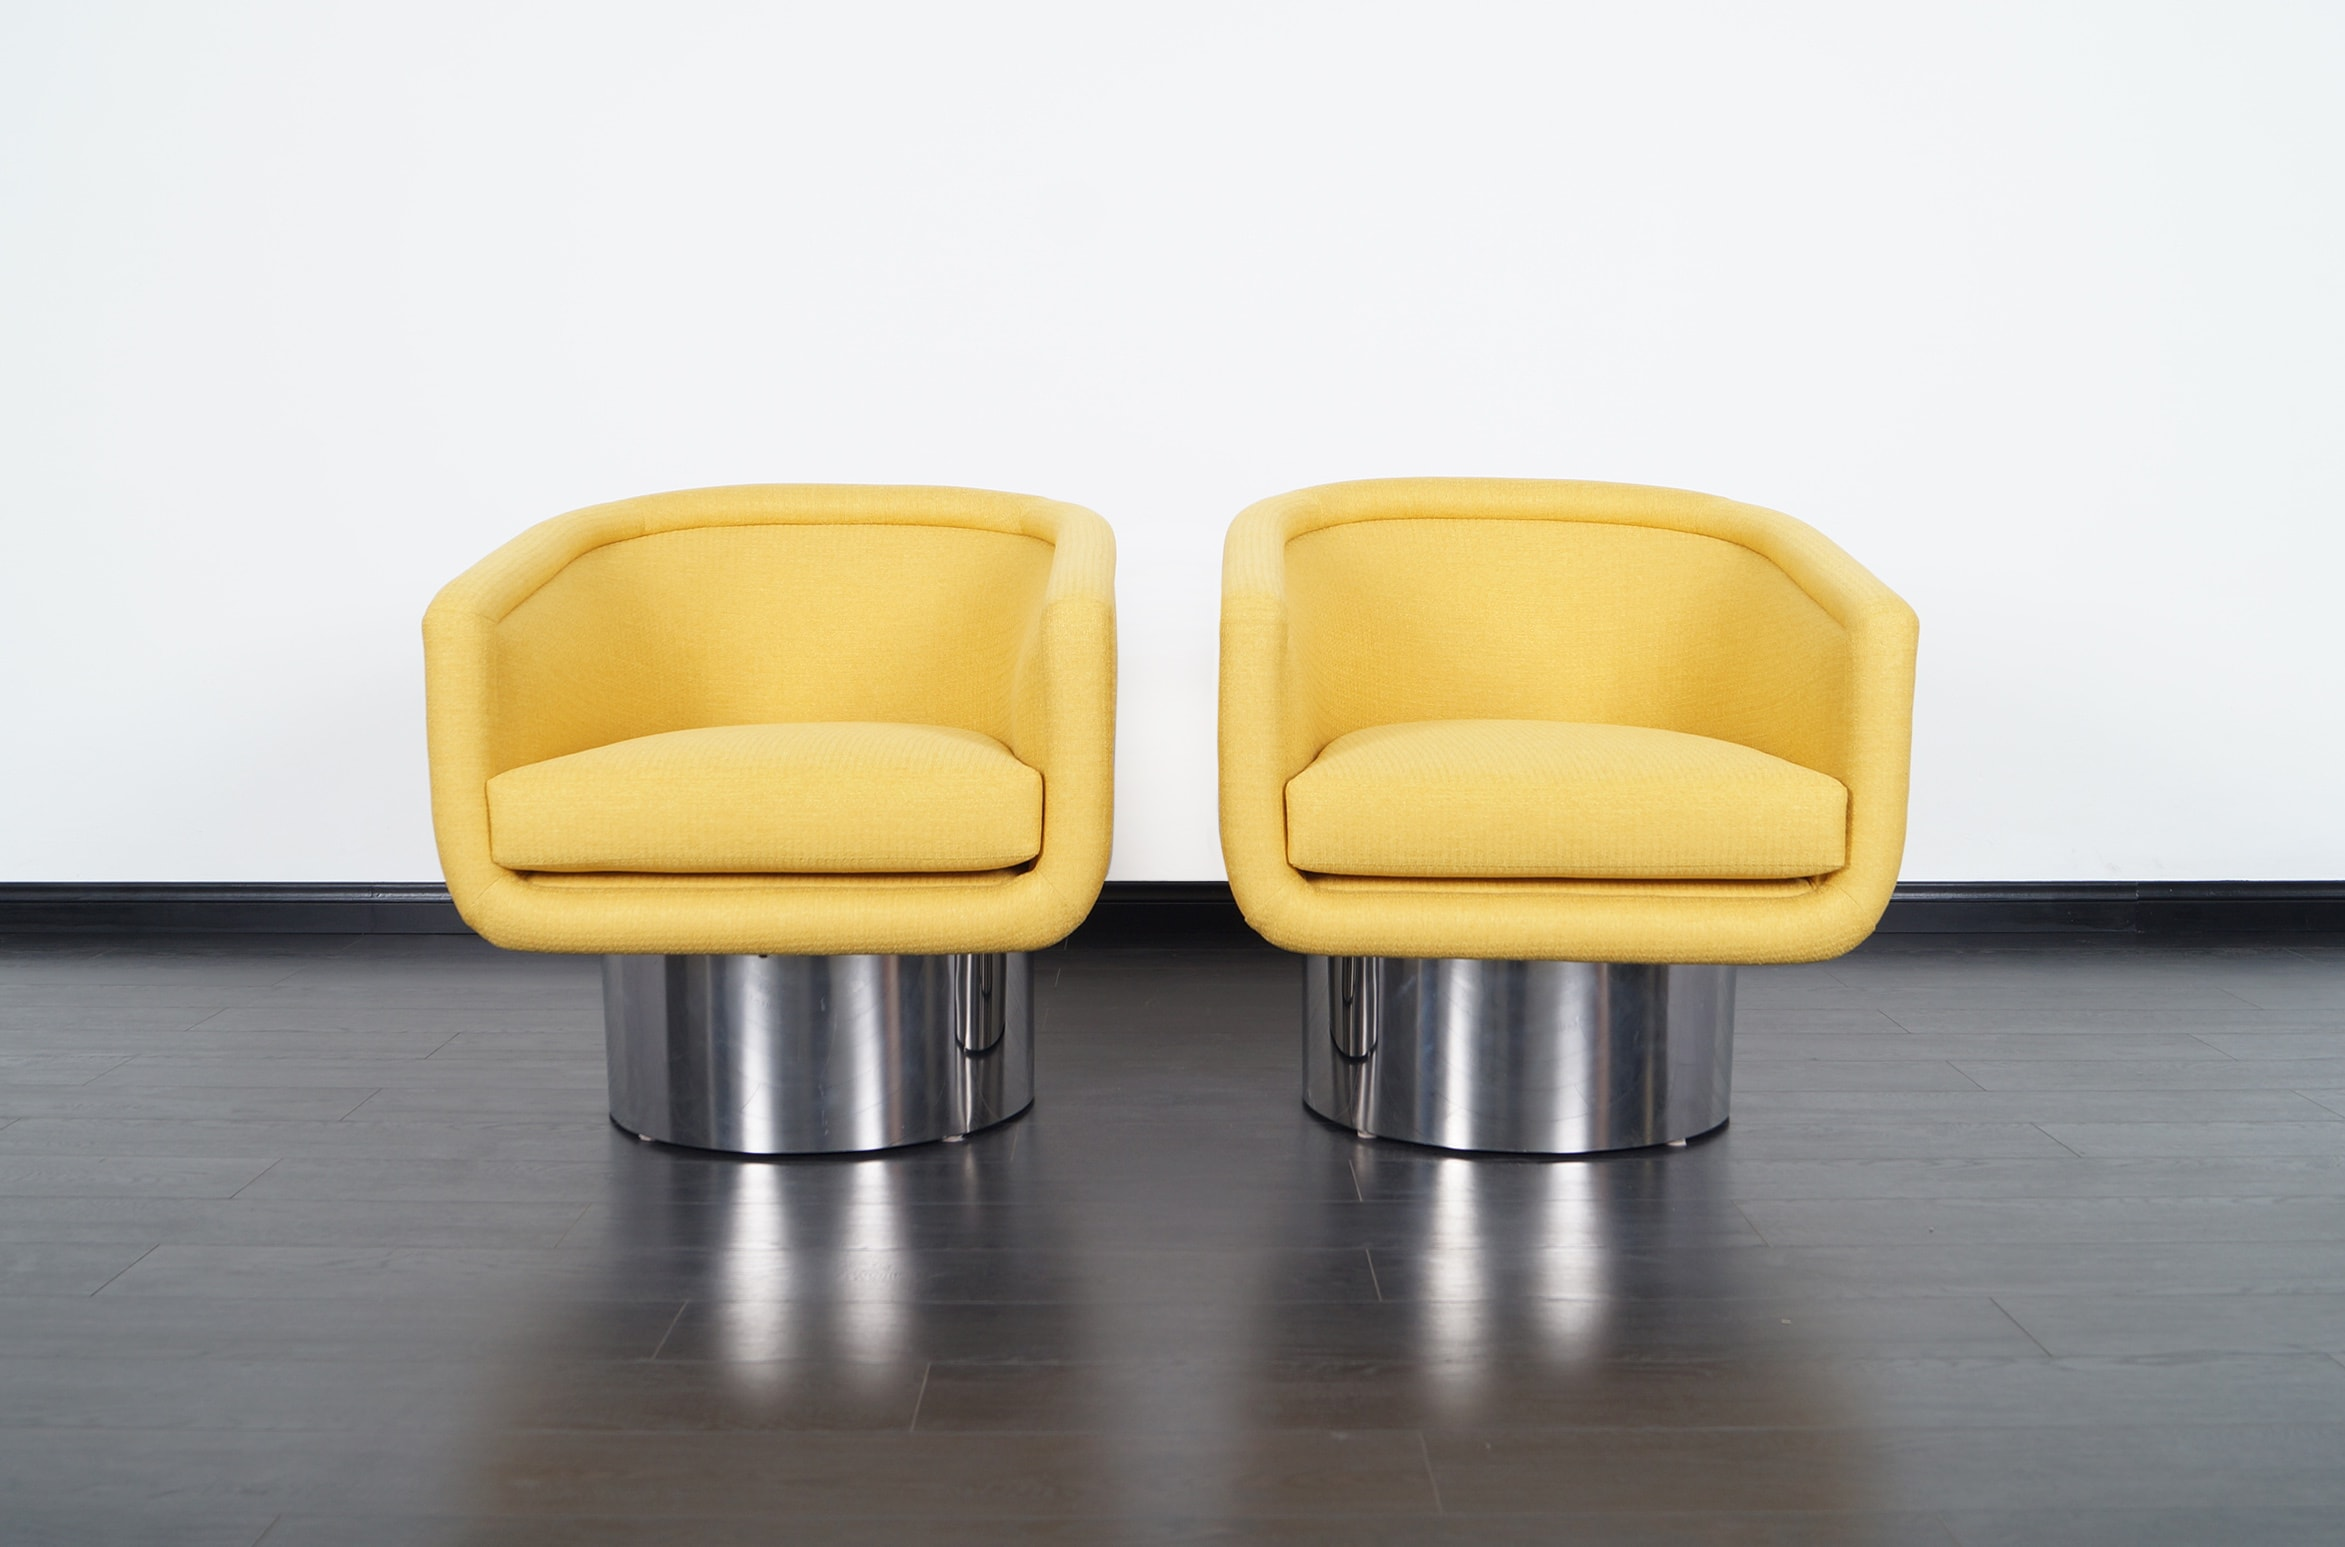 Vintage Chrome Swivel Lounge Chairs by Leon Rosen